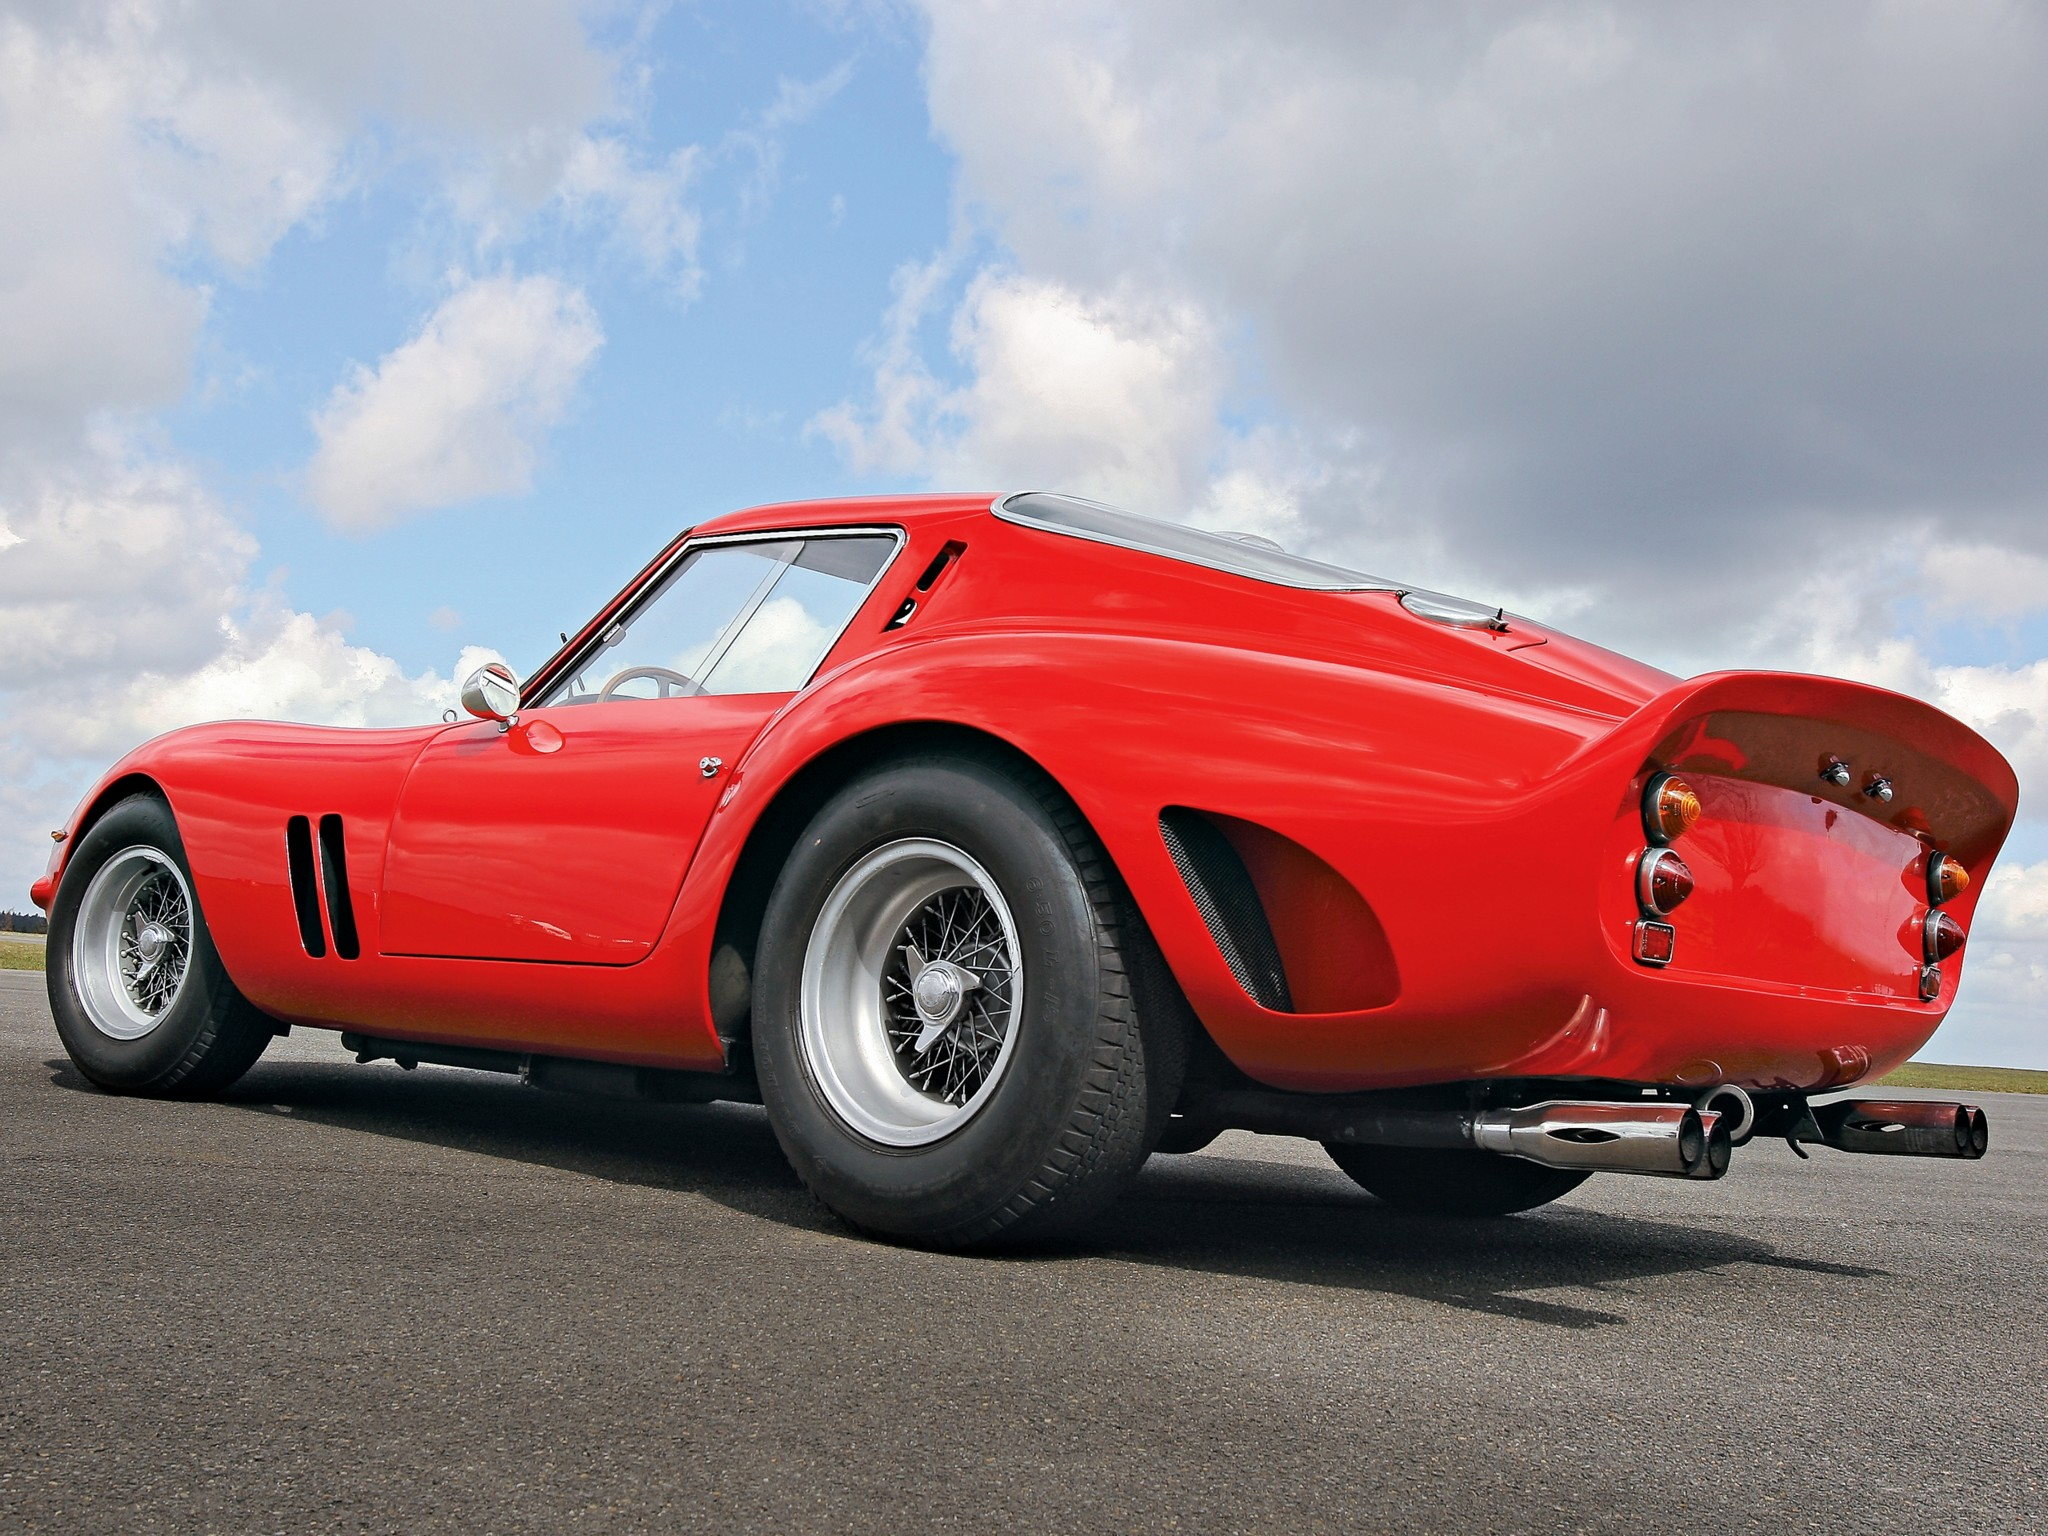 ferrari 250 gto 1962  1963  1964 autoevolution manual used cars for sale manual used cars for sale by owner